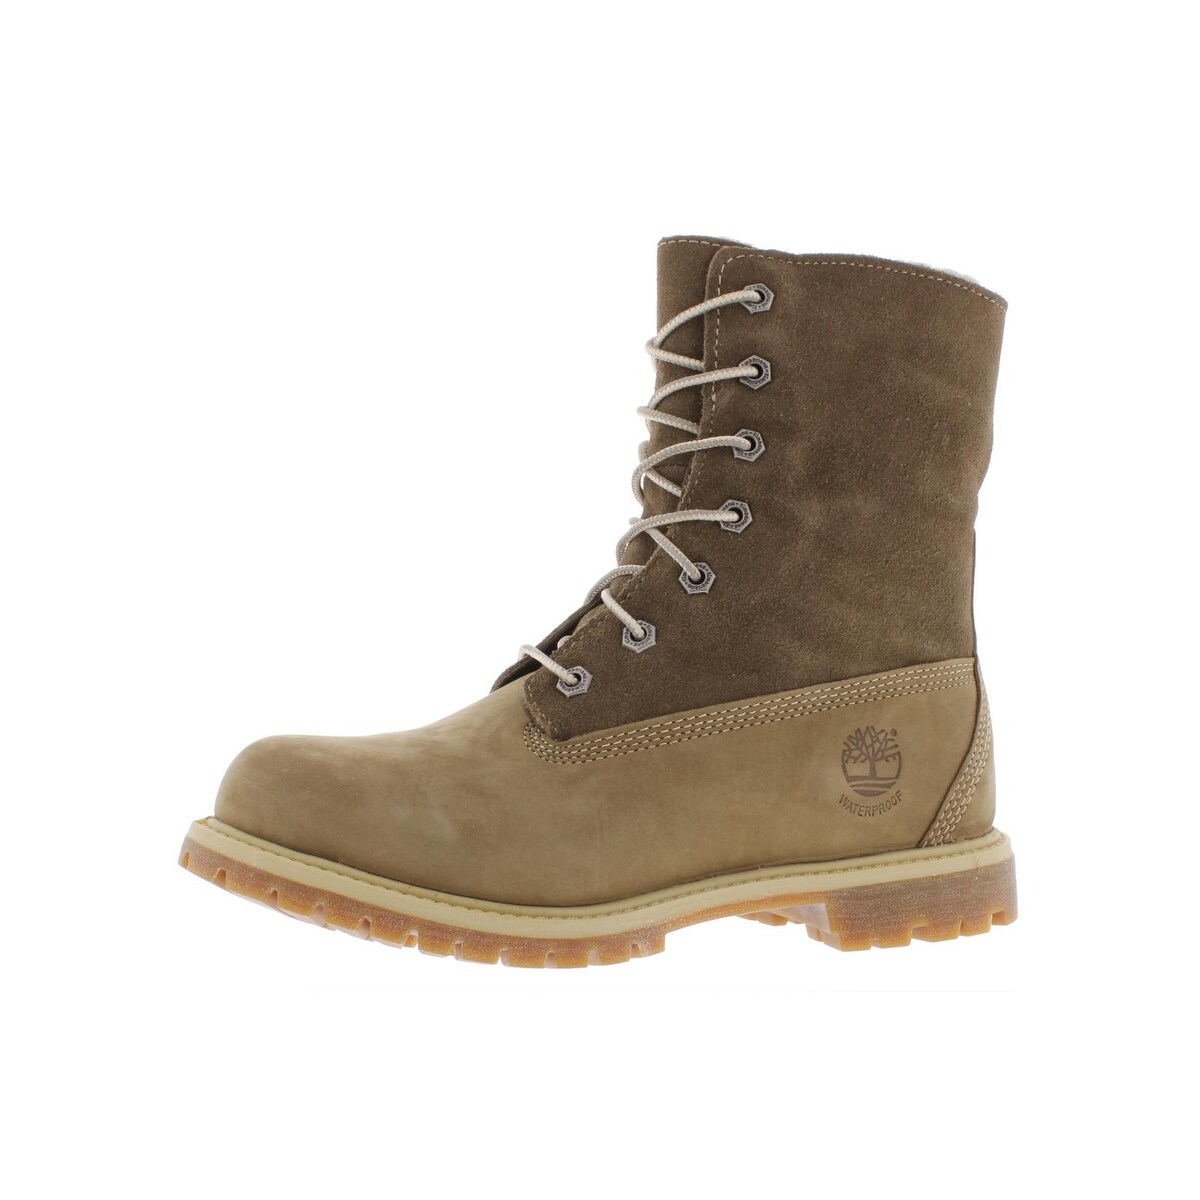 36319a8bb43 Buy Timberland Women's Boots Online at Overstock | Our Best Women's ...